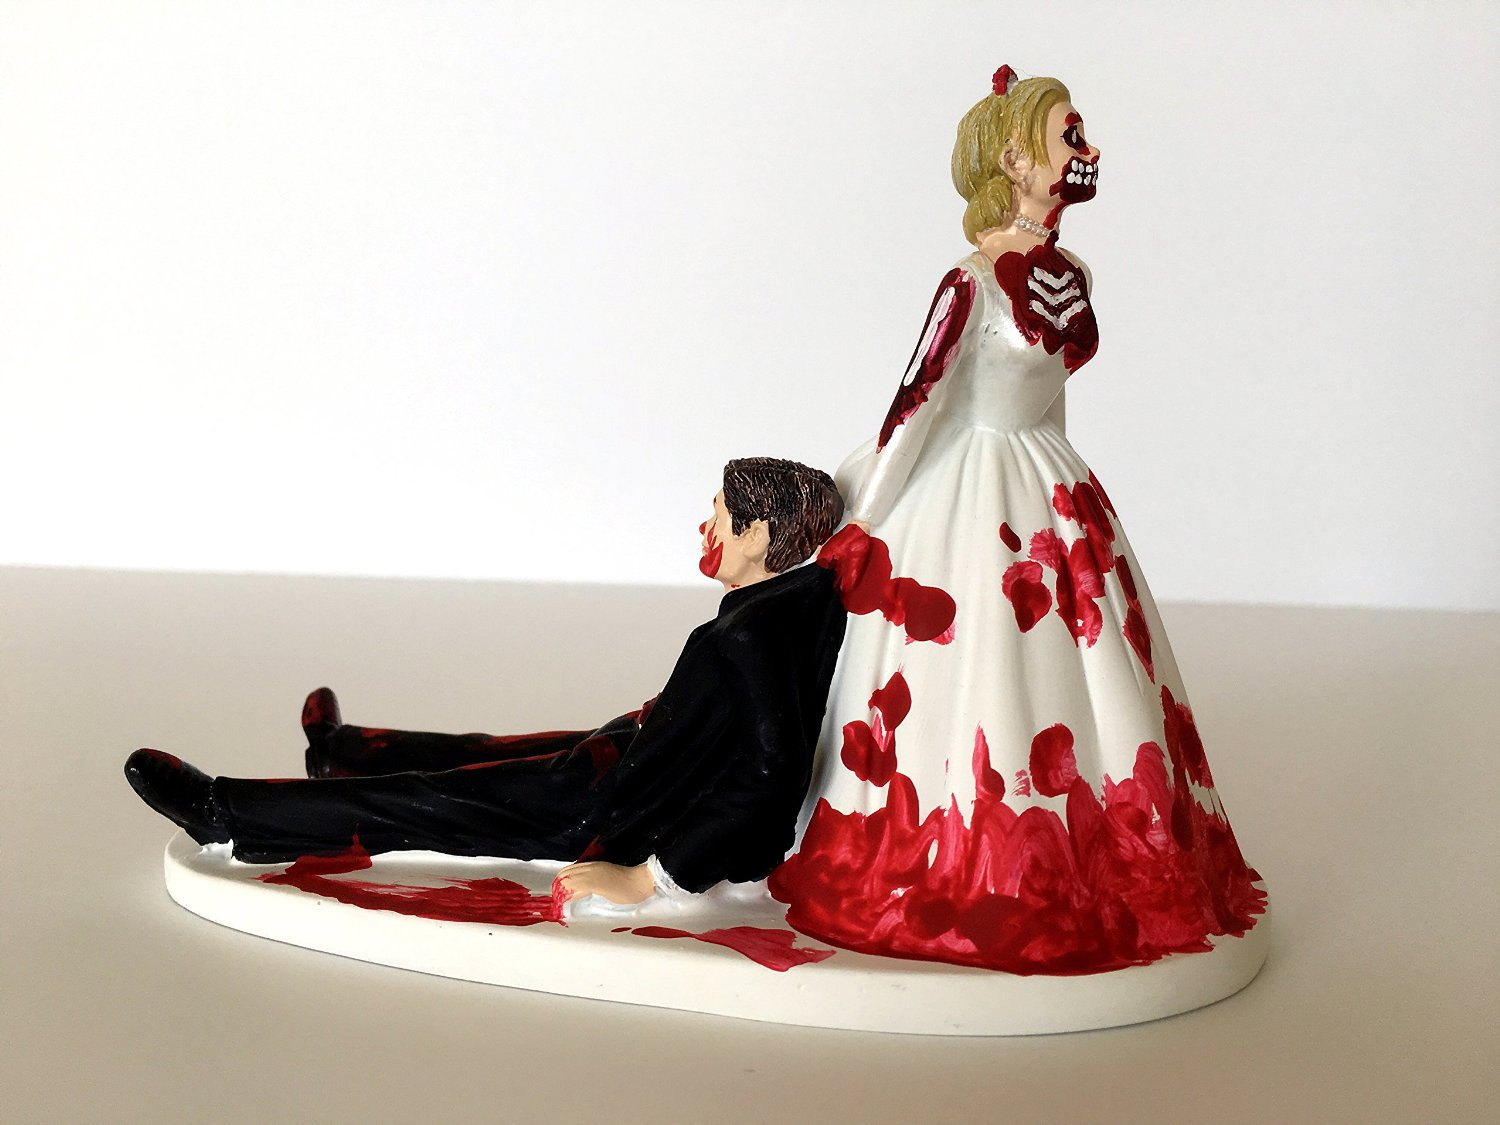 15 Funny Wedding Cake Toppers To Make Your Guests Laugh